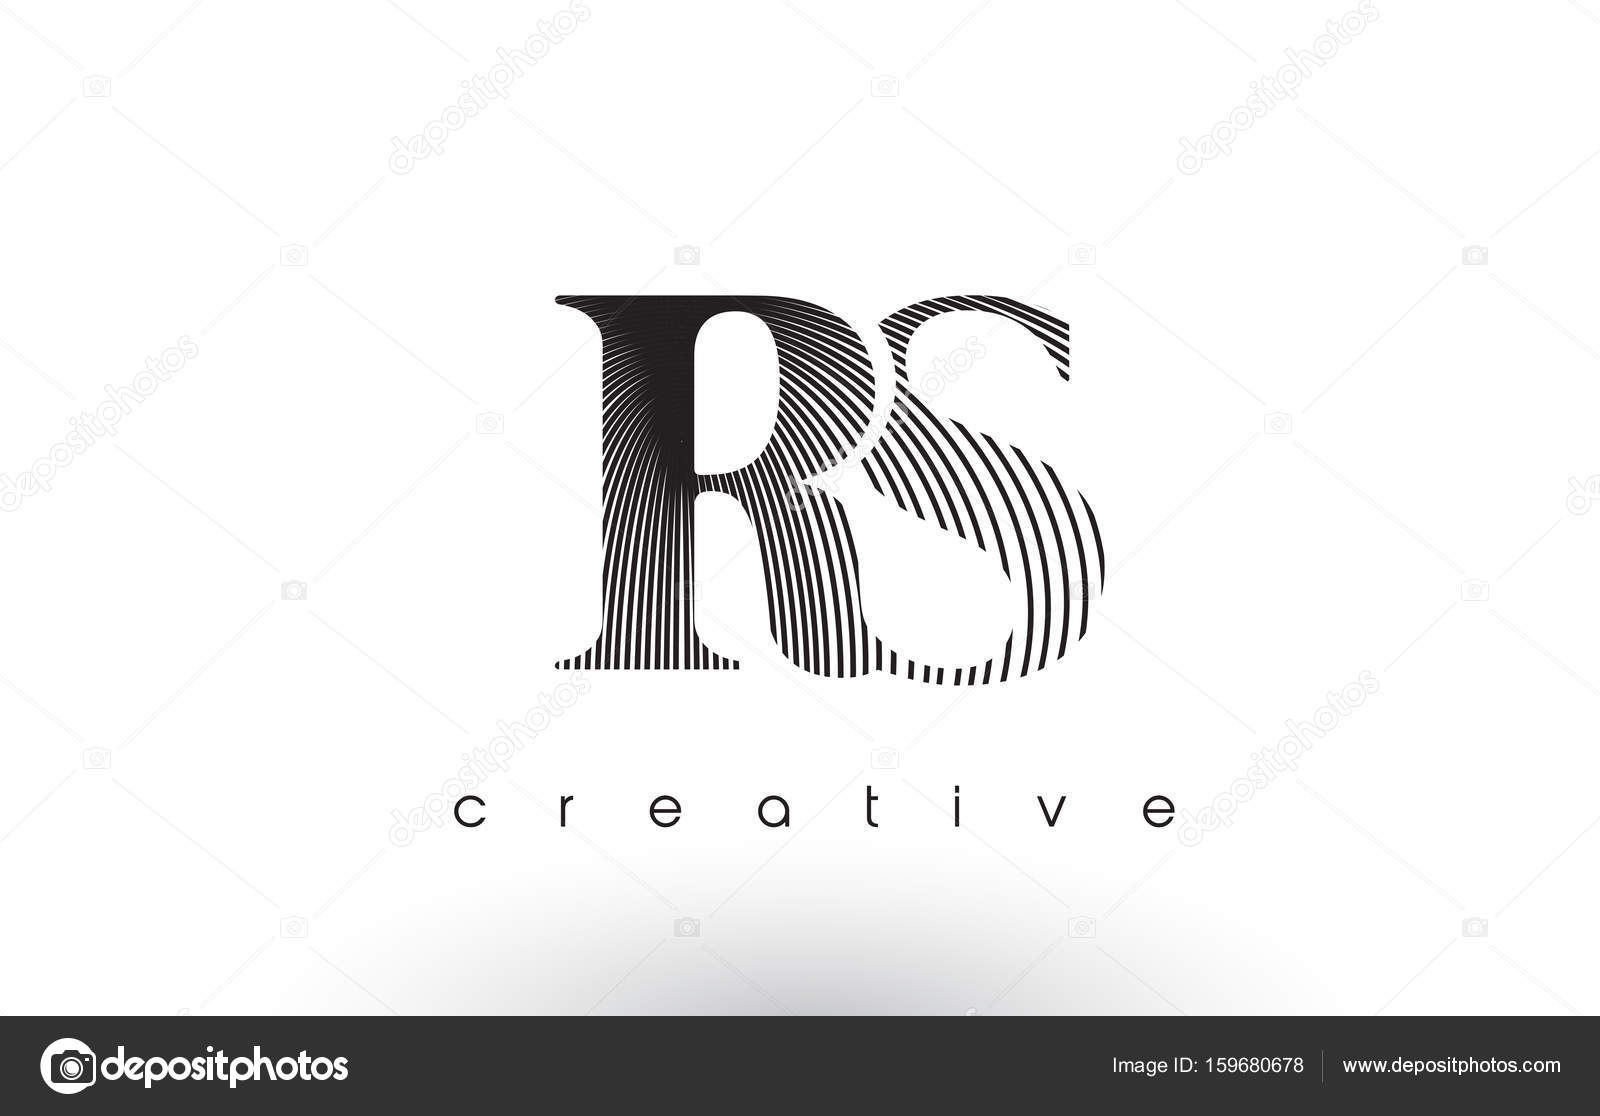 Rs logo design with multiple lines and black and white colors rs logo design with multiple lines and black and white colors stock vector buycottarizona Image collections